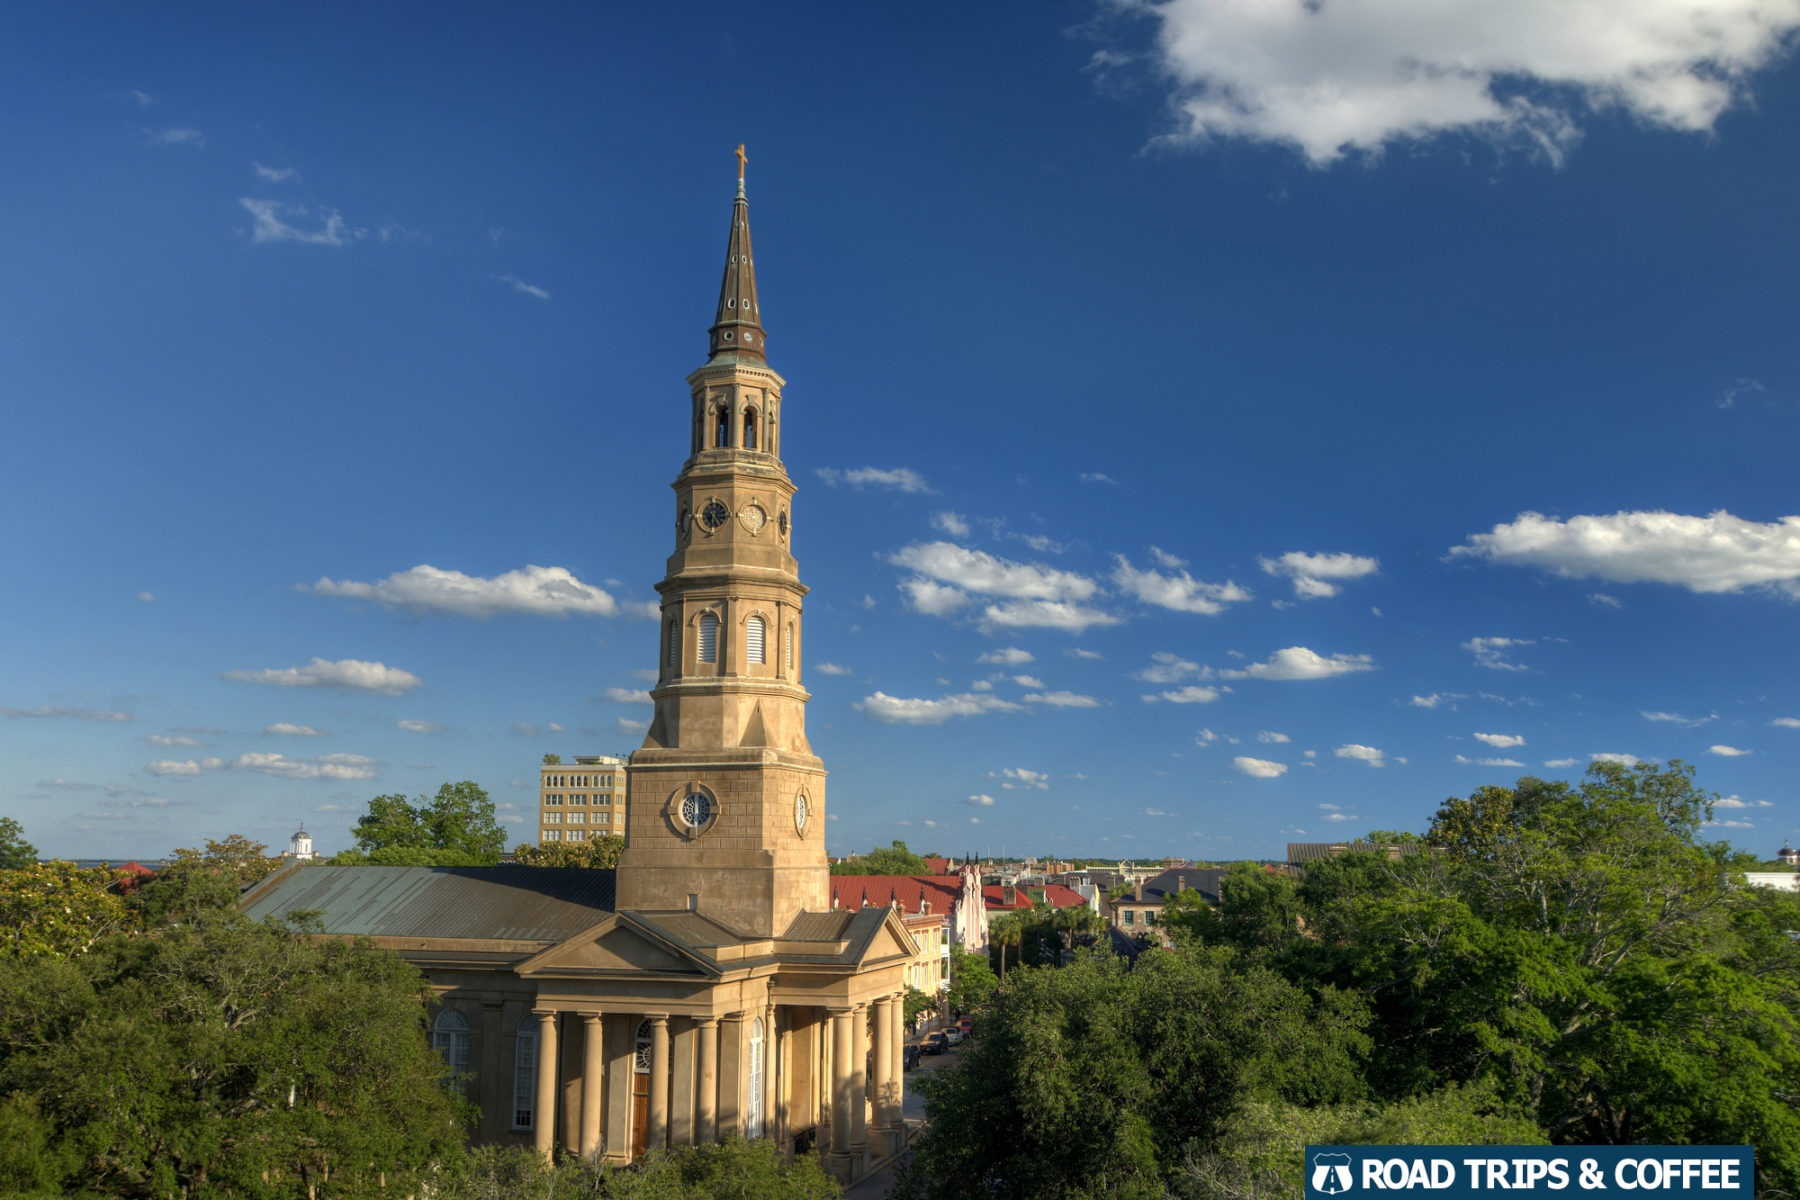 The towering beige steeple of Saint Phillips Episcopal Church in Charleston, South Carolina